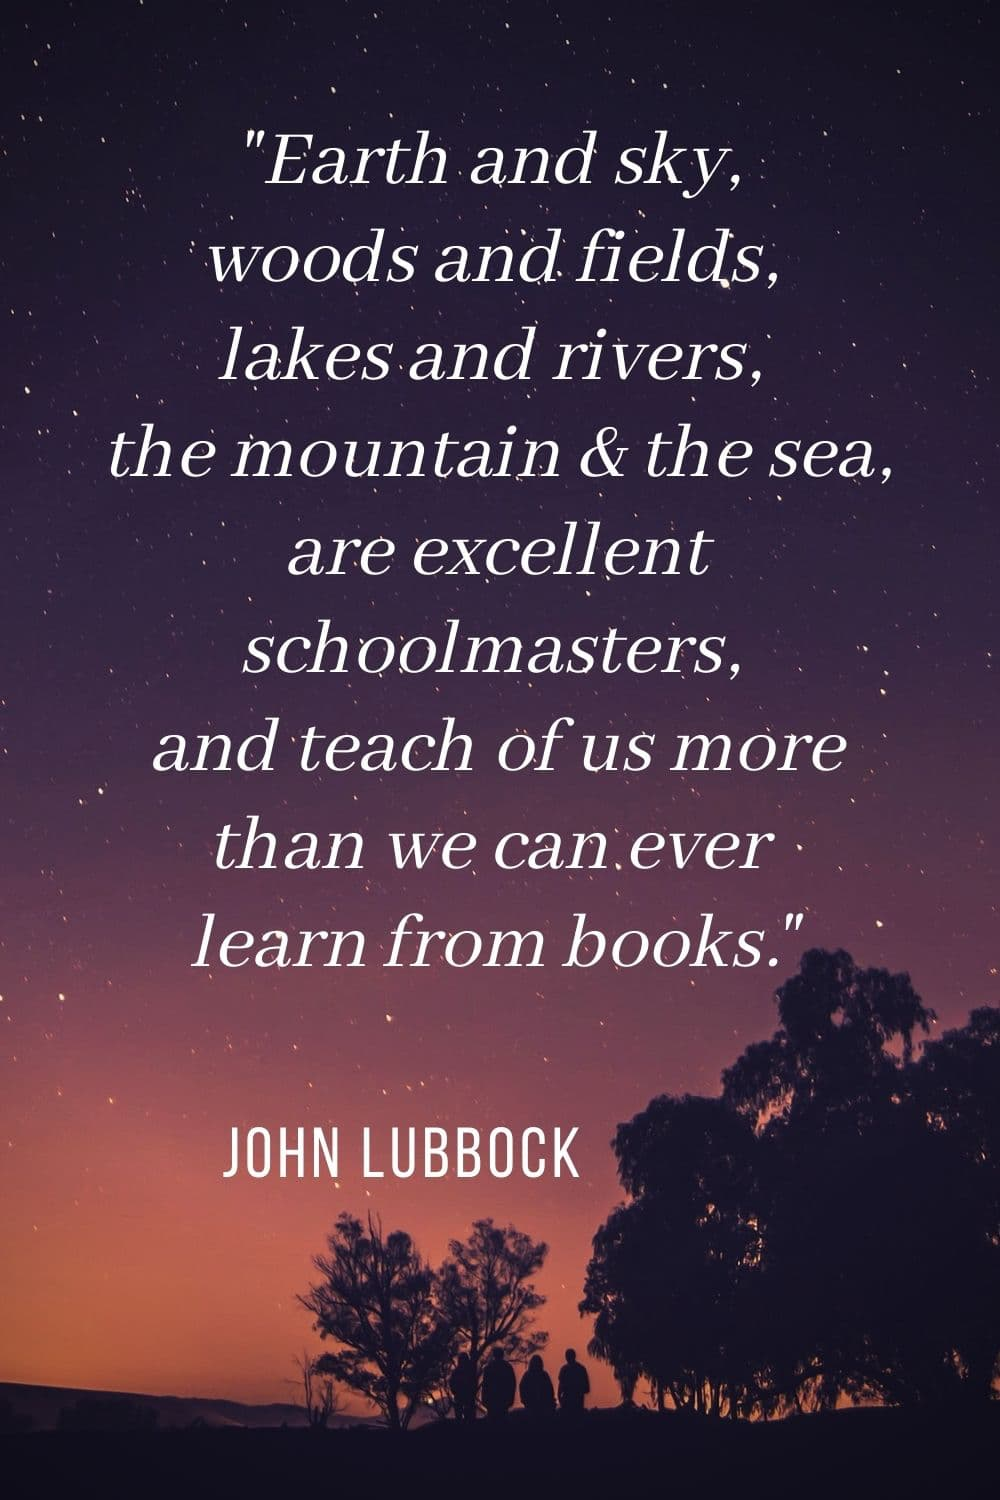 john lubbock quote about camping